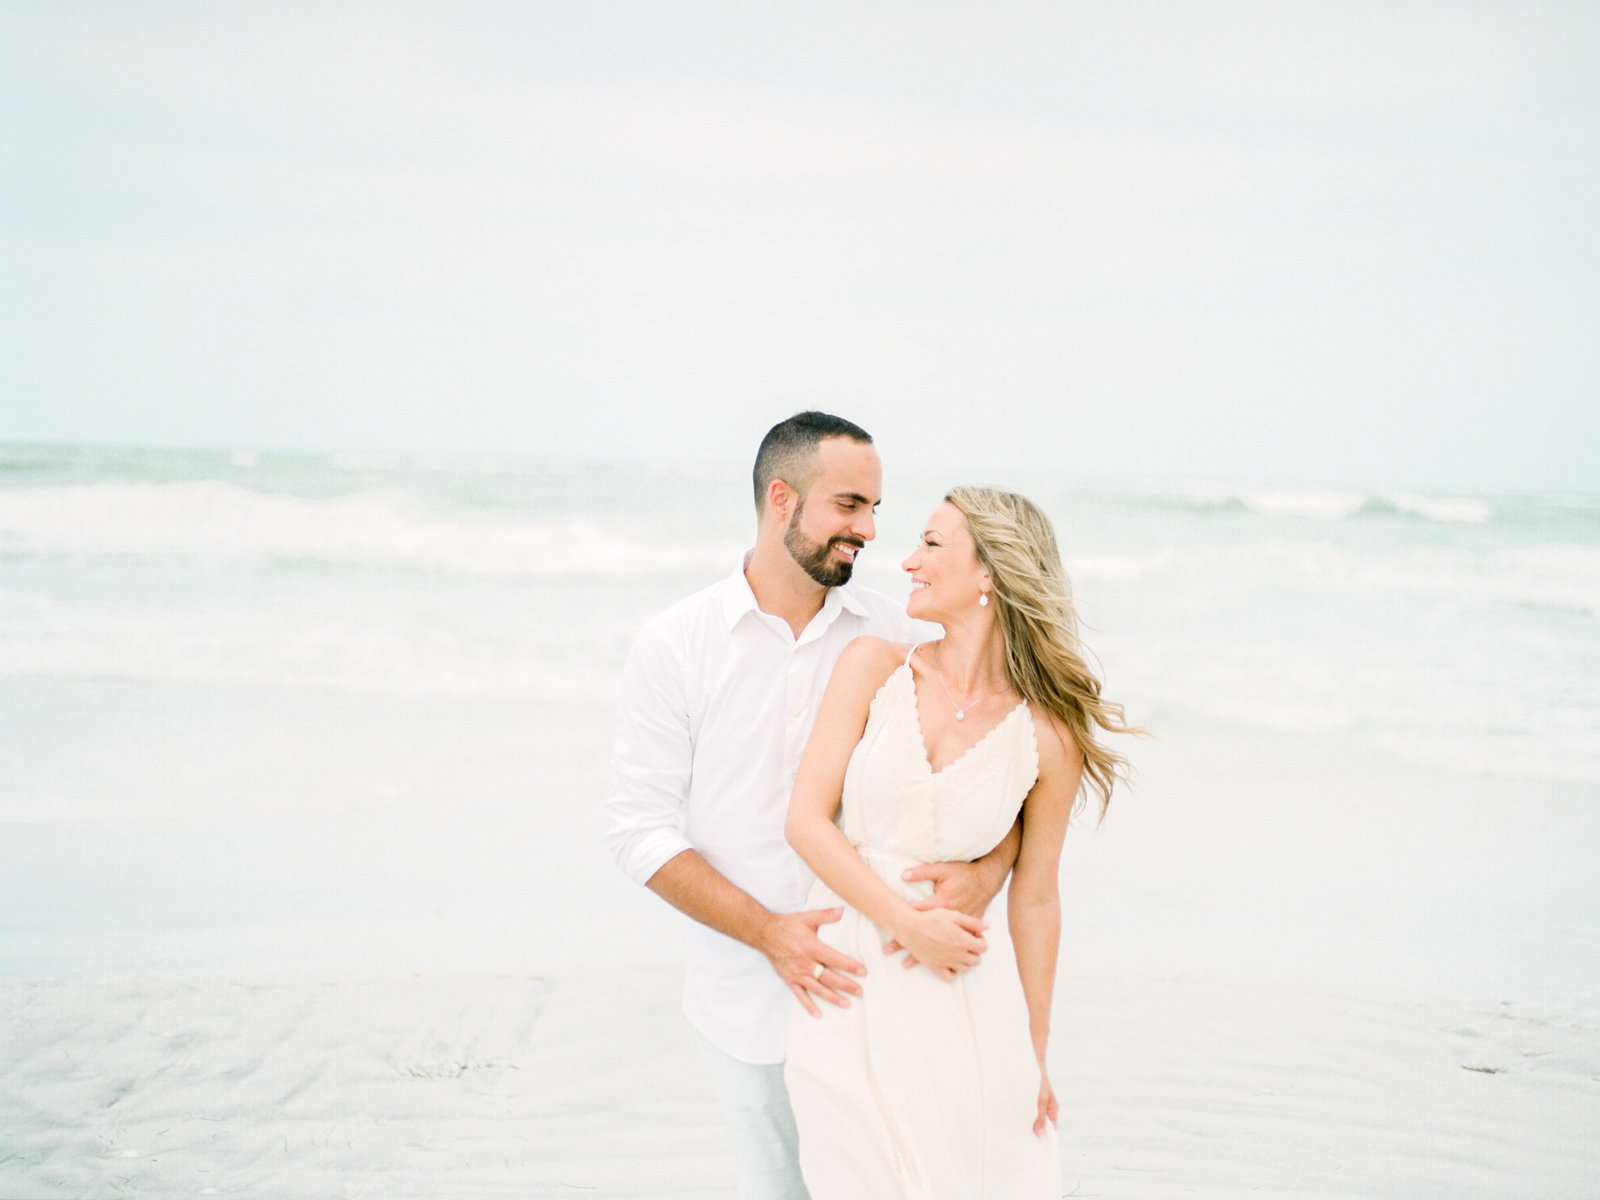 Sarasota Wedding Photographer (16 of 16)